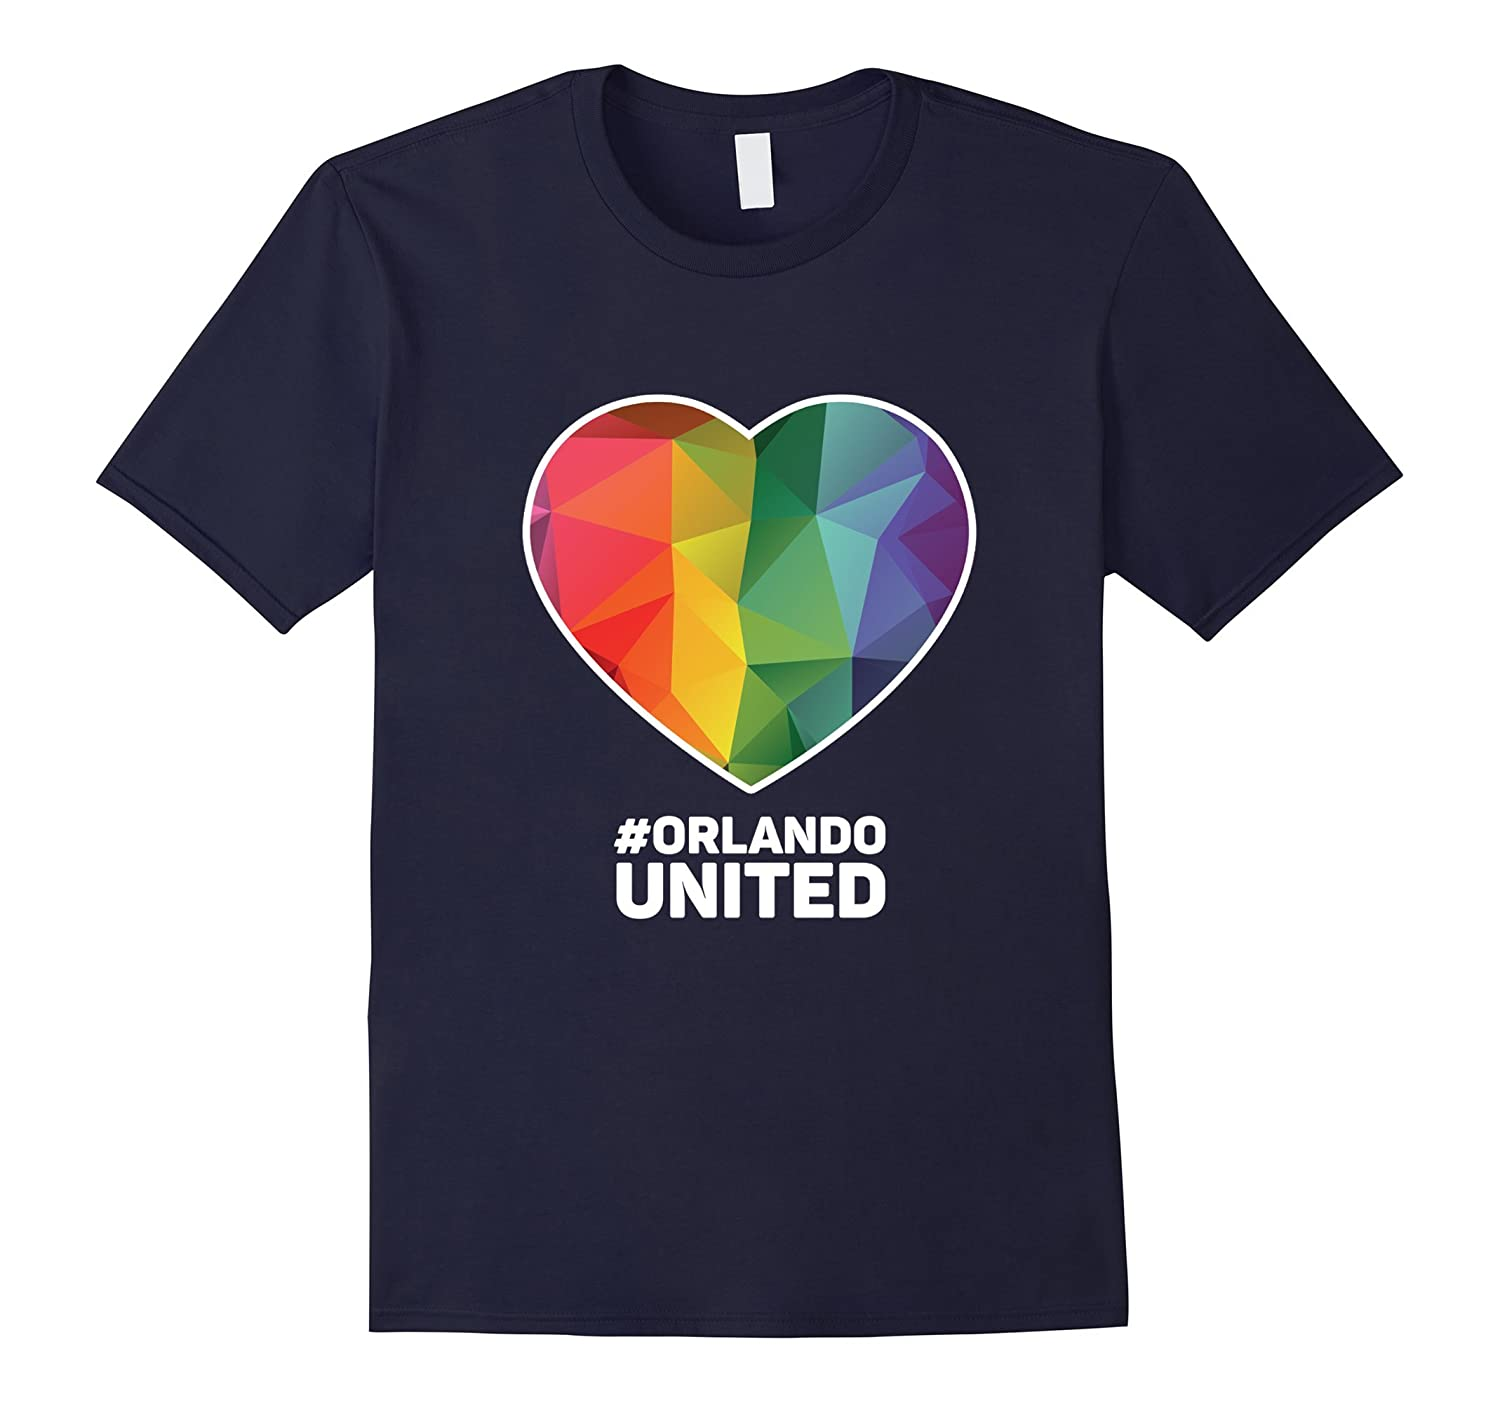 #Orlando United T-Shirt For LGBT Gay Pride Month 2016-BN